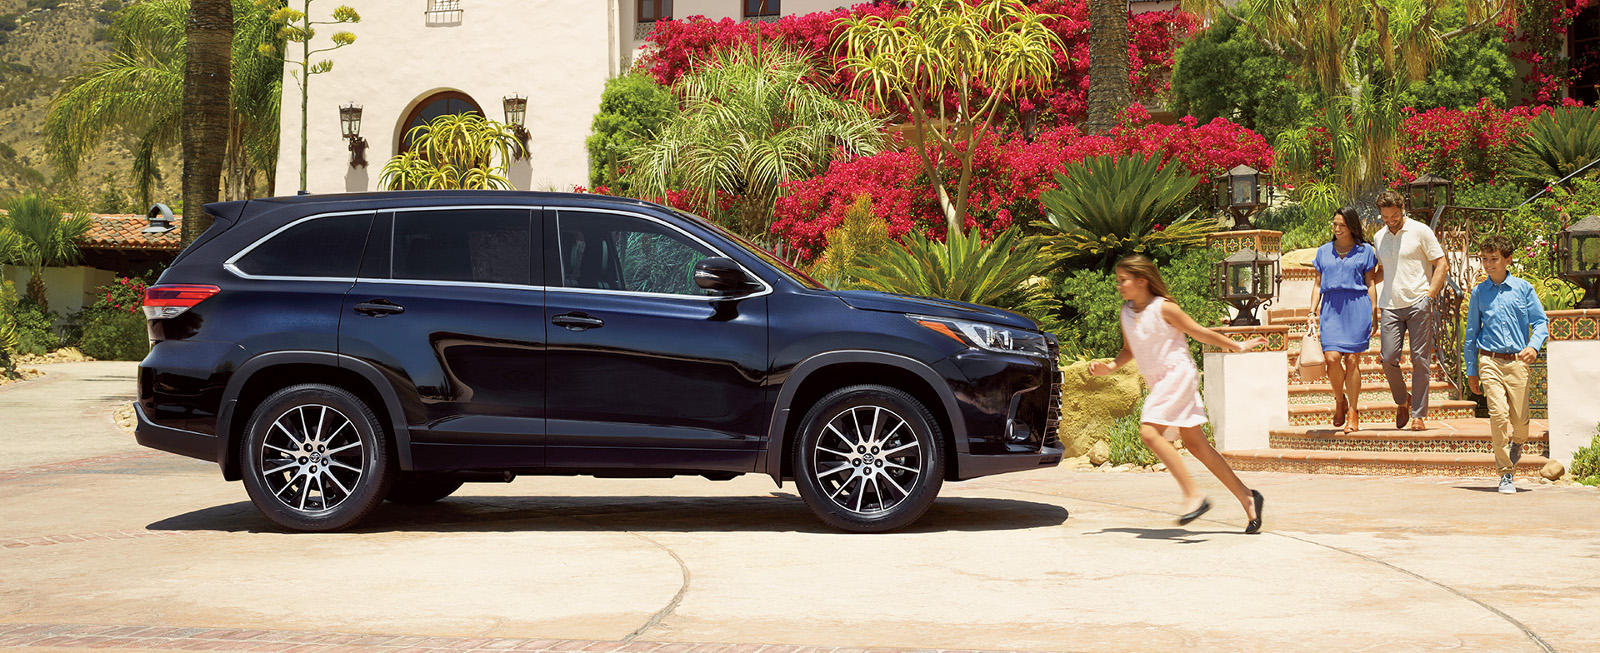 2017 Toyota Highlander Trim Levels Take Your Pick